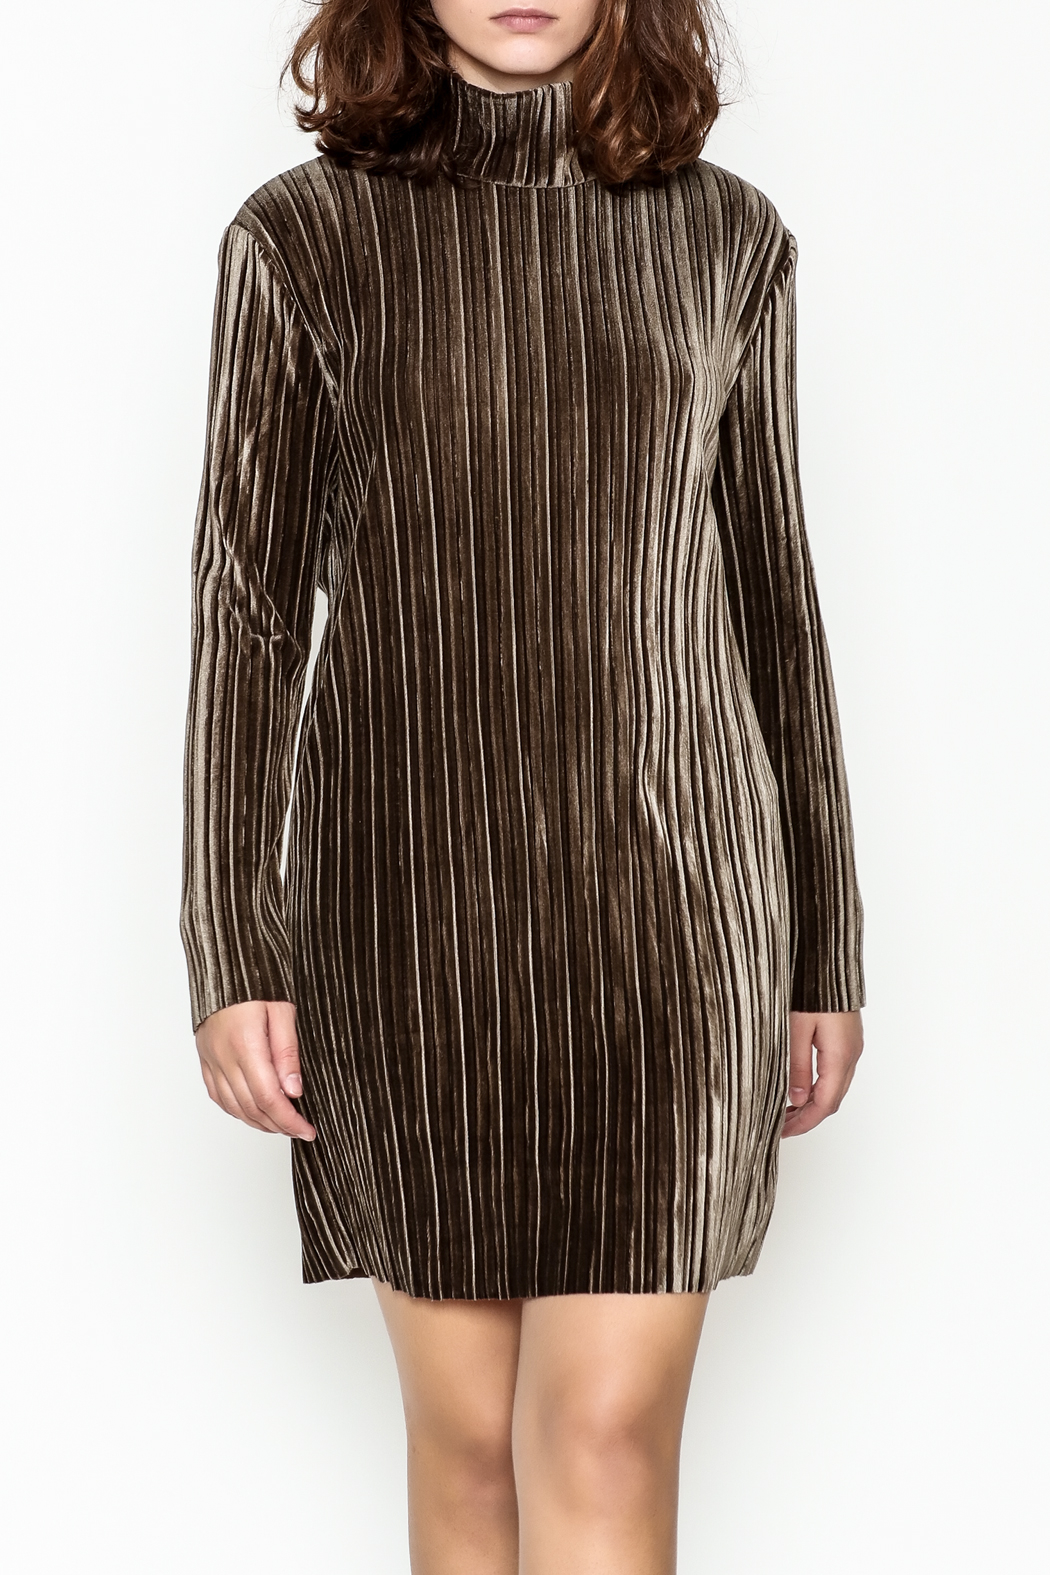 MinkPink Pleated Velvet Dress - Main Image